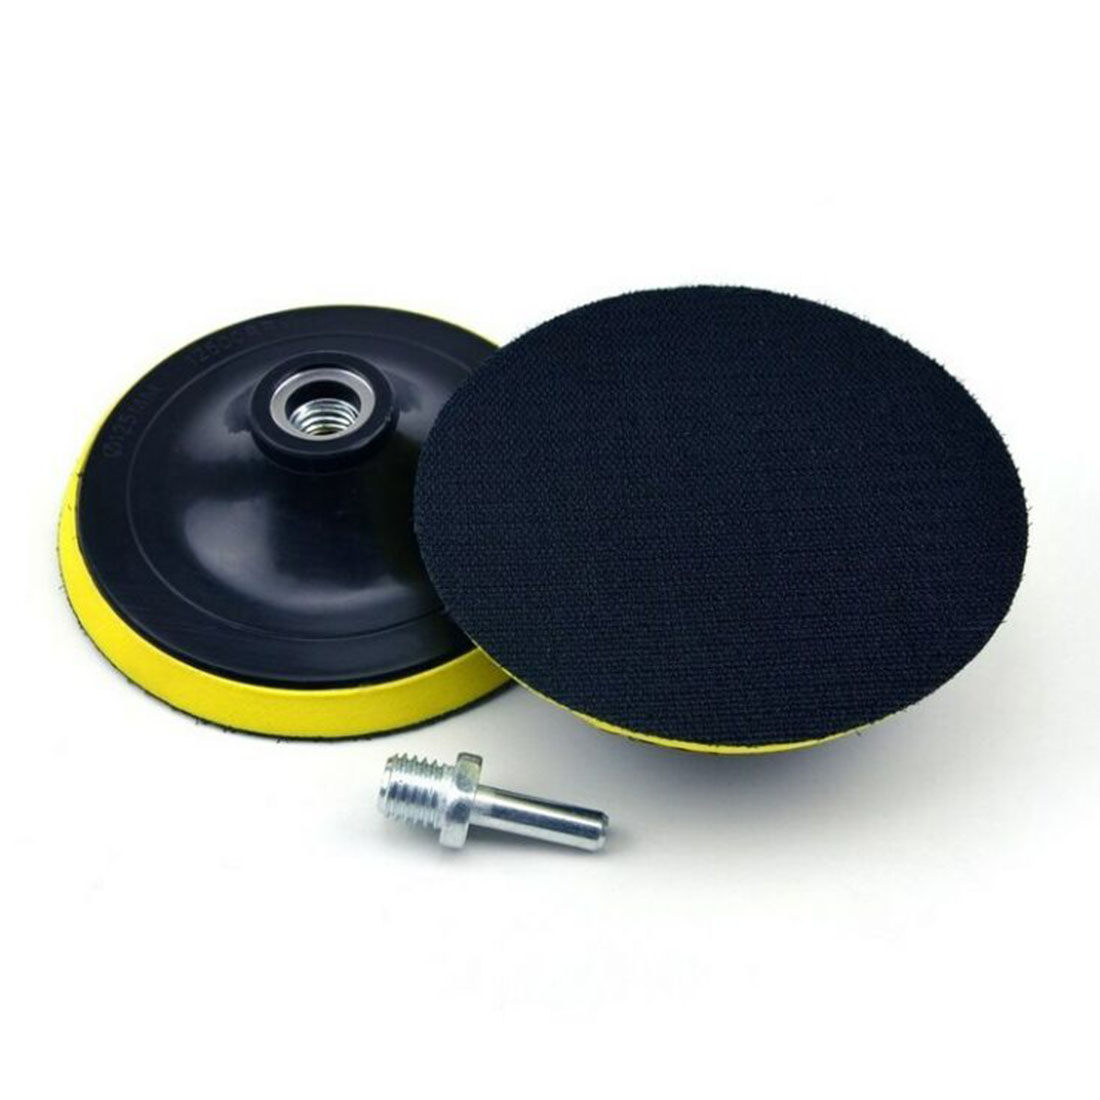 30pcs 7 Inch <font><b>60</b></font> 240 600 <font><b>1000</b></font> 5000 10000 Grit Wet/Dry Hook And Loop Sanding Discs Rotary Tools Ferramenta image